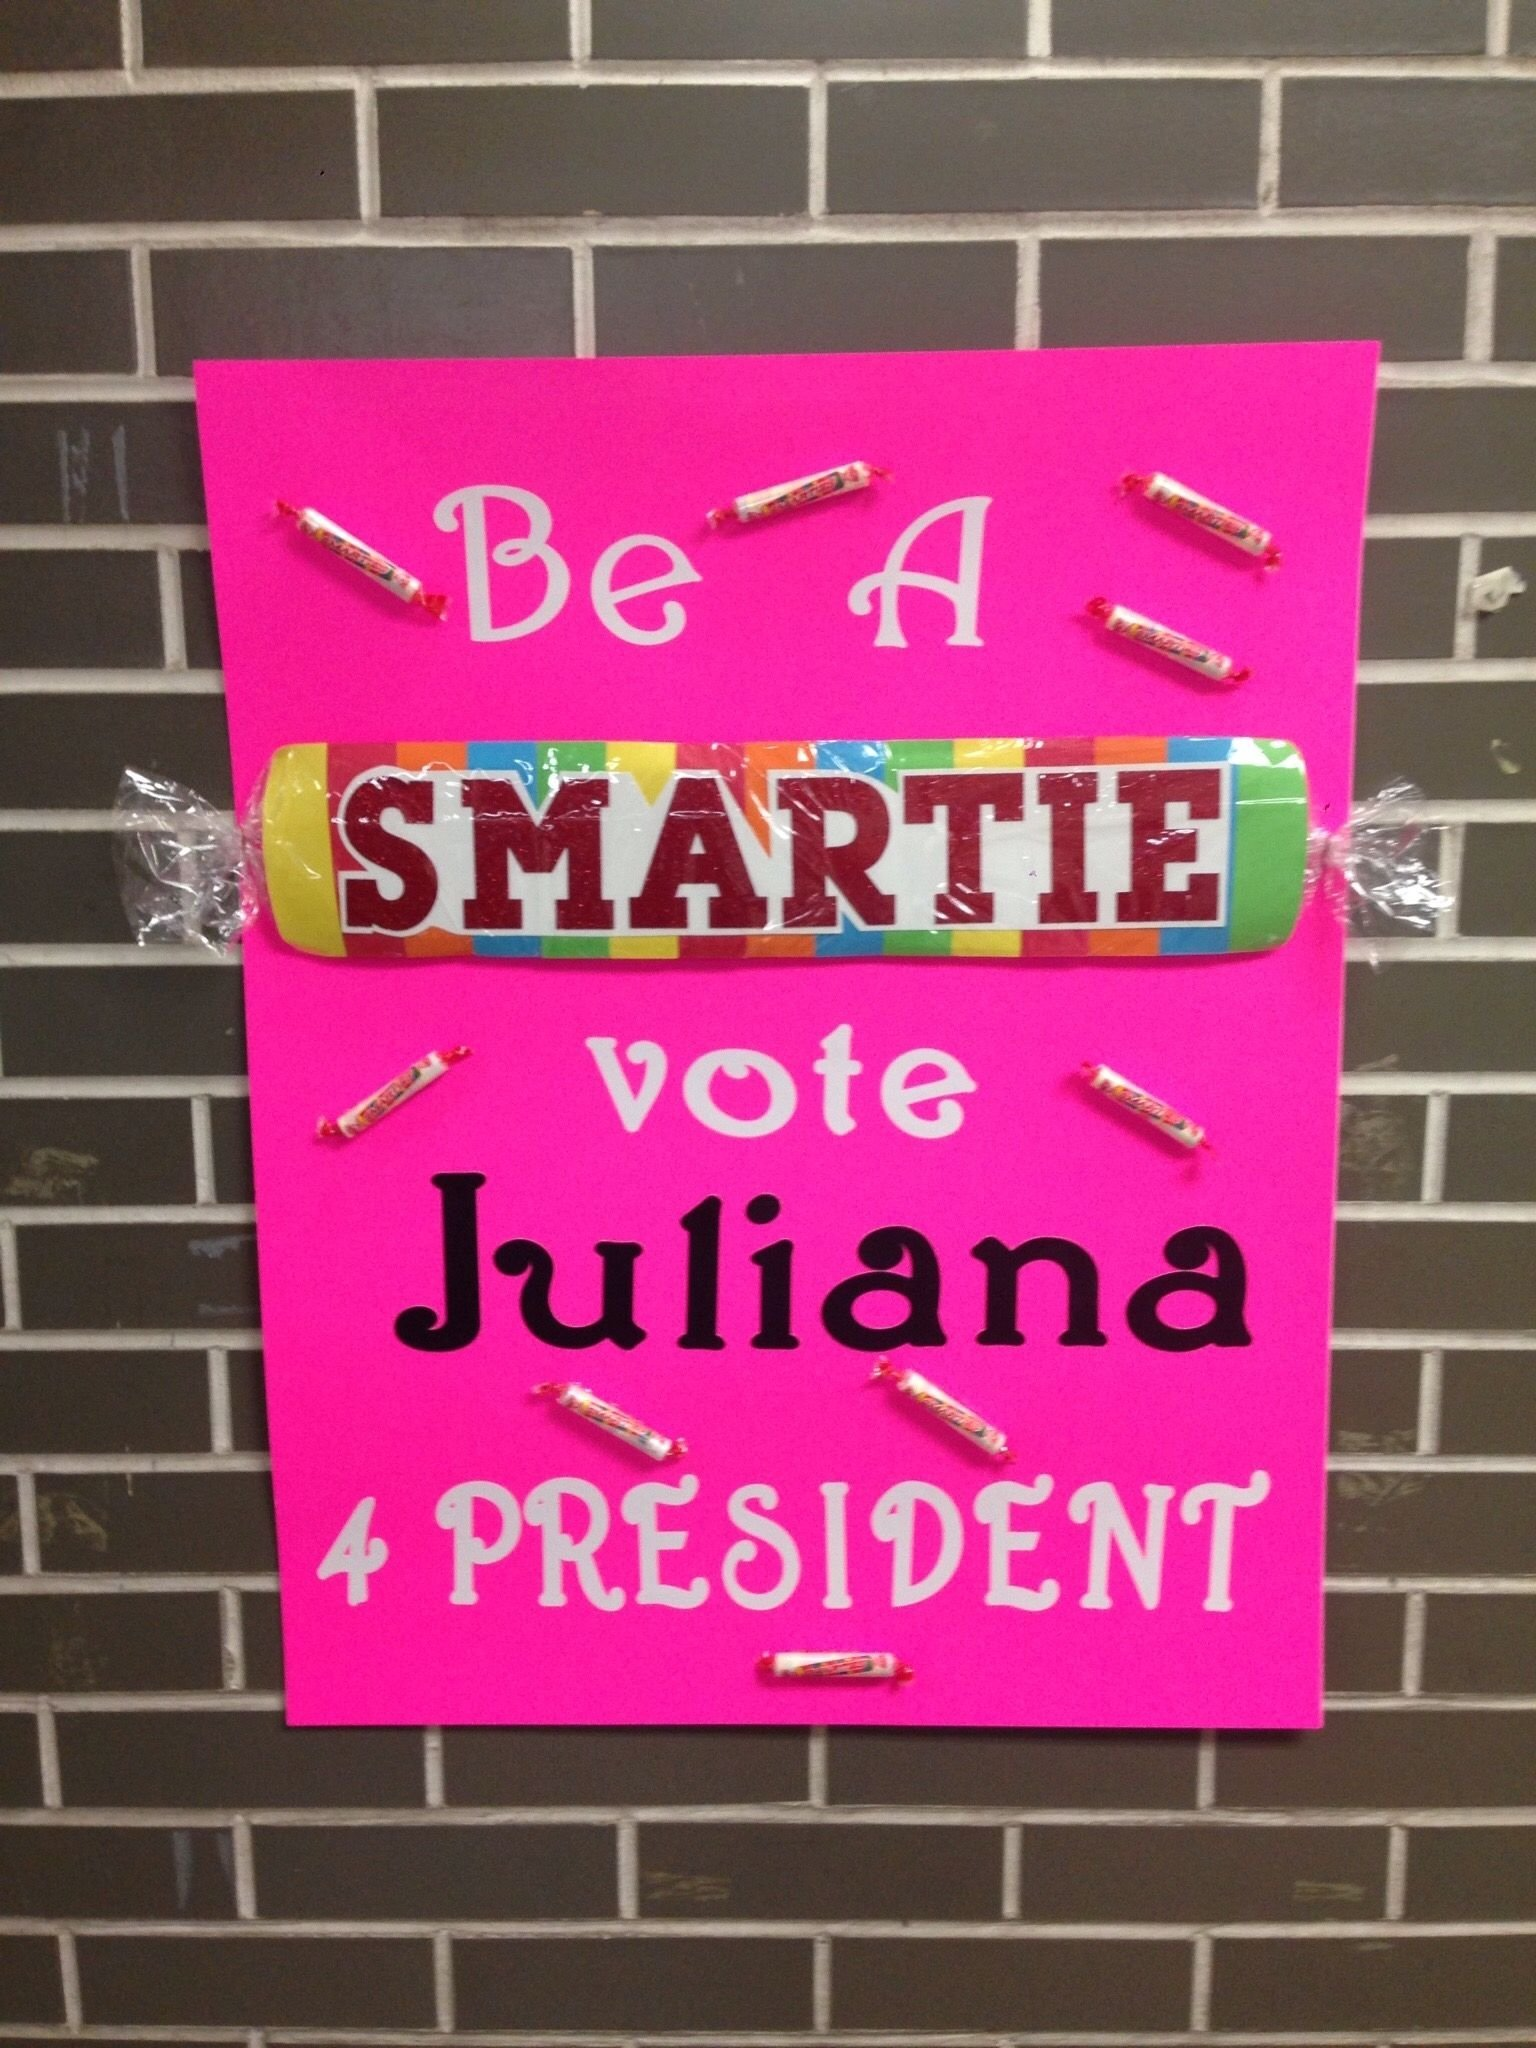 KEEP CALM And Vote for me for Student Council Poster ... |Vote For Me Student Council Posters